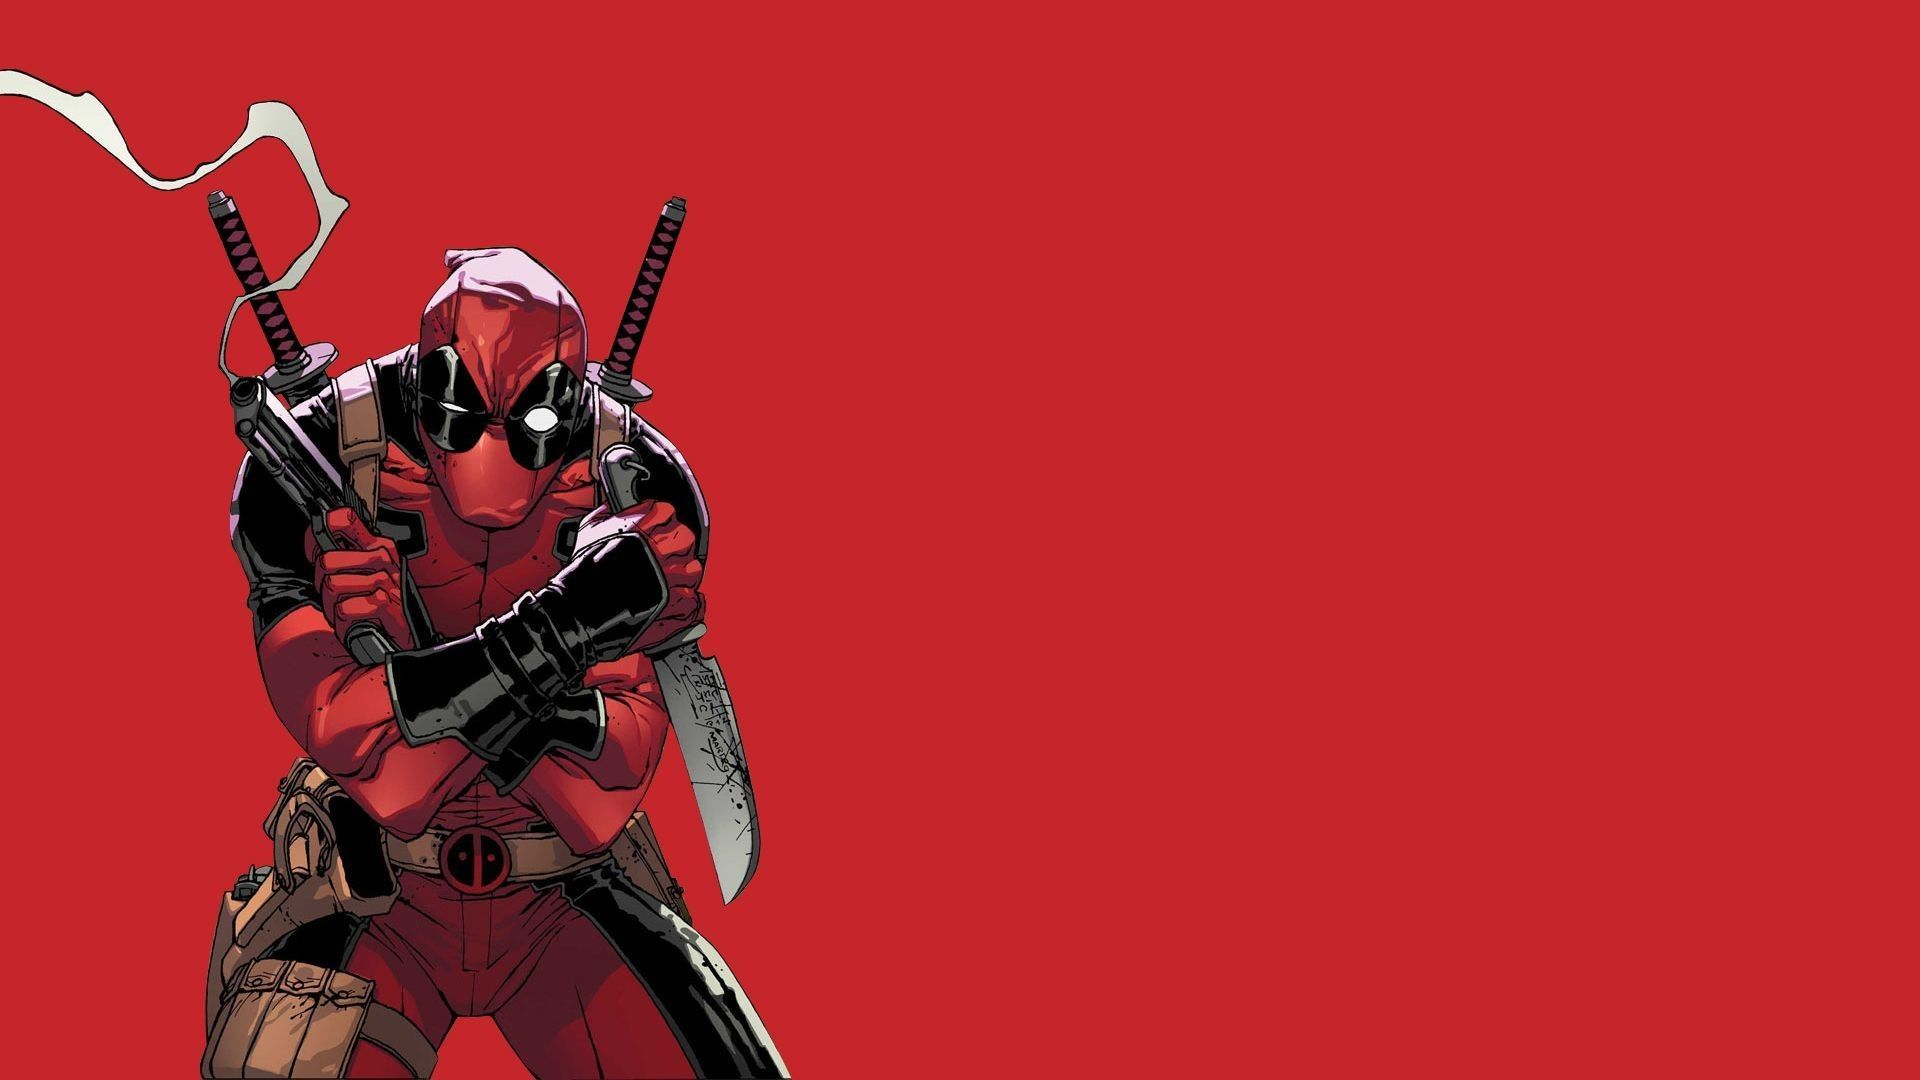 Deadpool Wallpaper 4k Iphone 3d Wallpapers Deadpool Wallpaper Deadpool Illustration Deadpool Wallpaper Desktop